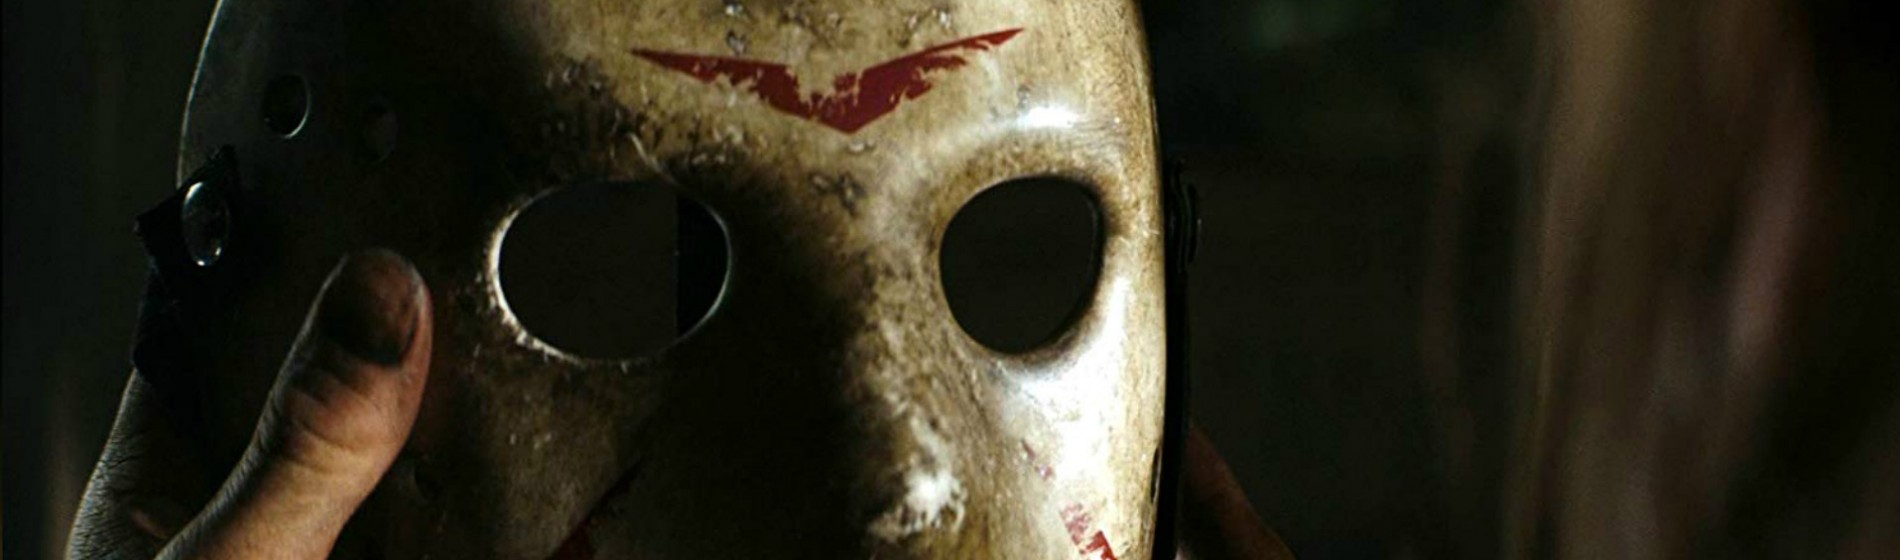 Jason-Mask-Reveal-2009